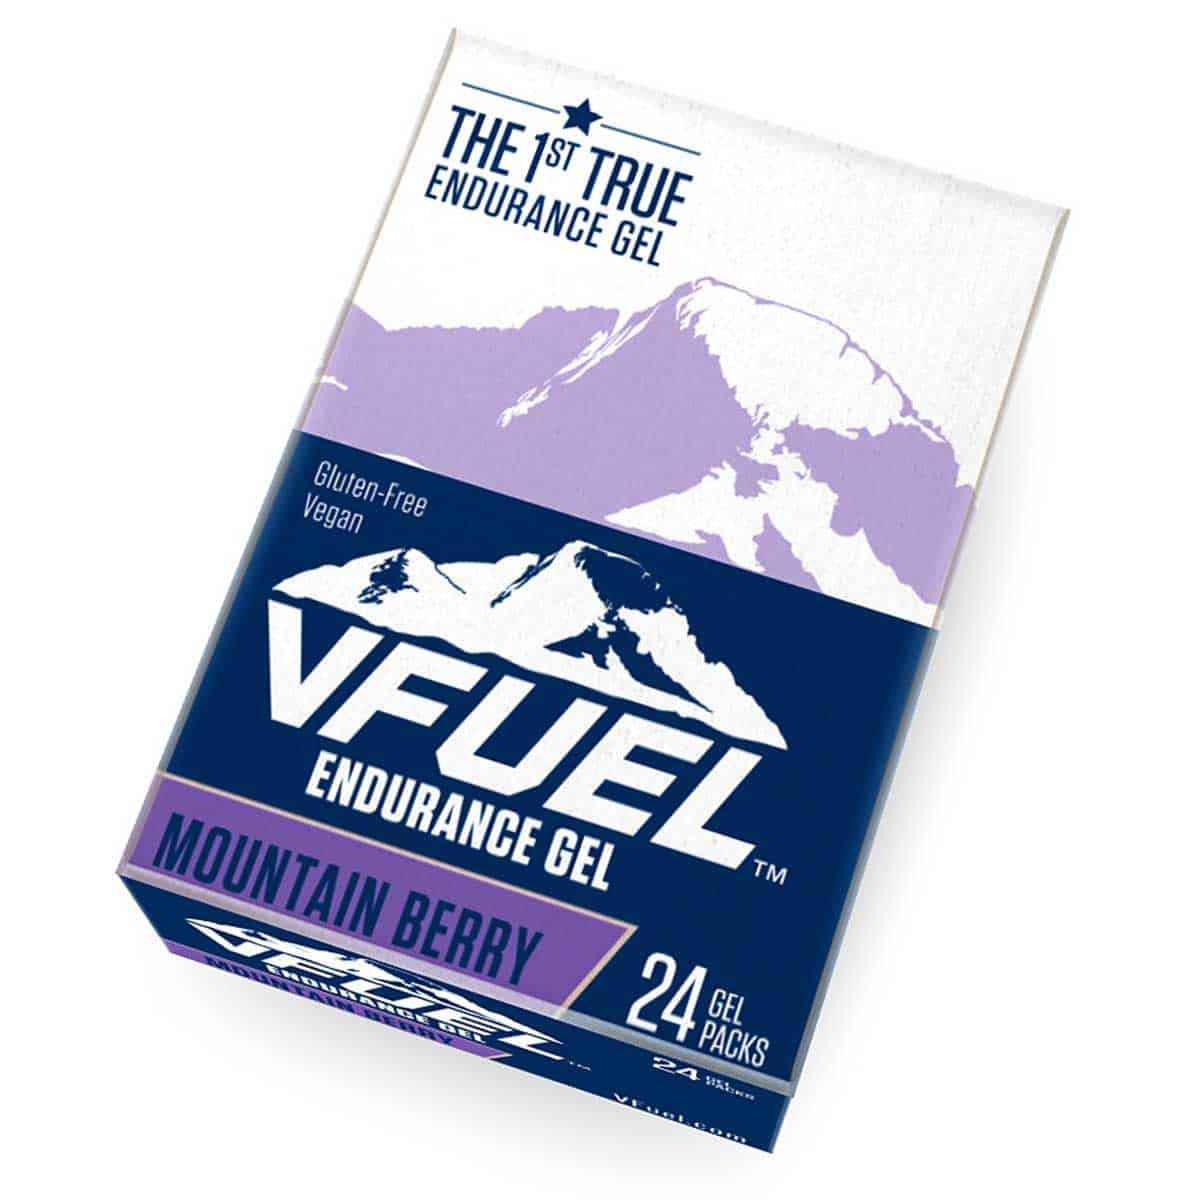 Buy VFuel Australia Endurace Gel 24 Pack - Mountain Bery Flavour